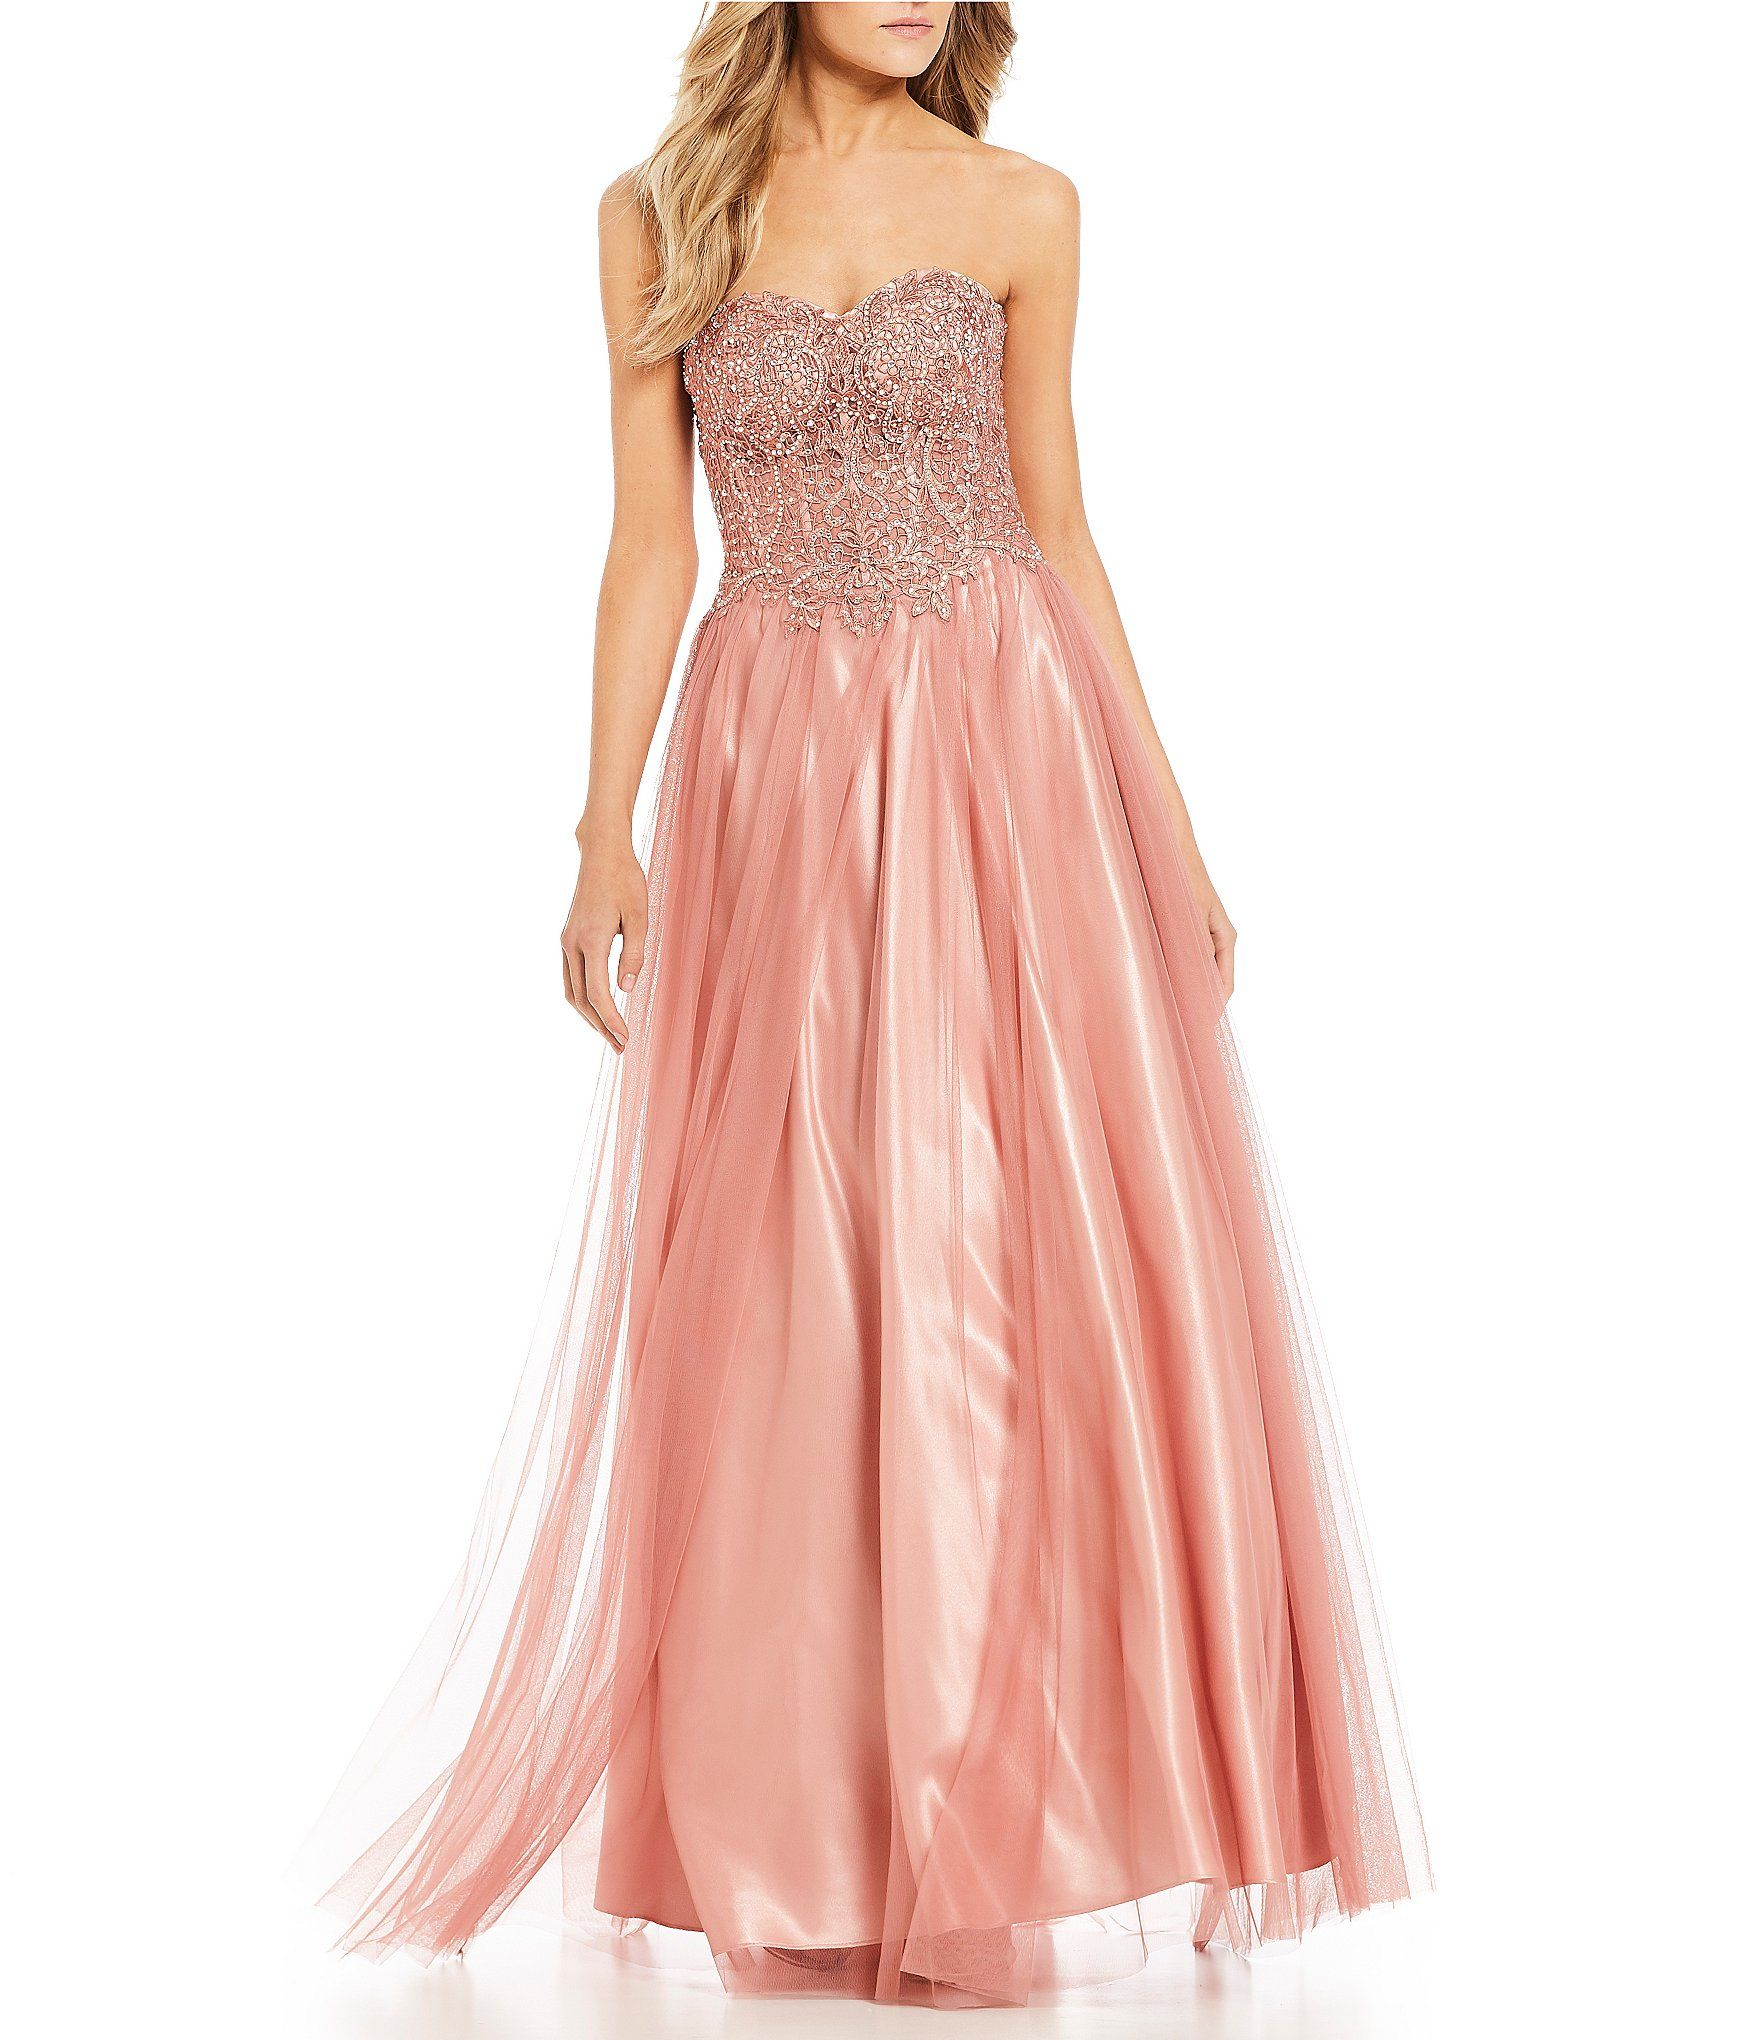 Blondie Nites Strapless Beaded Bodice Ball Gown | Dillards, Ball ...